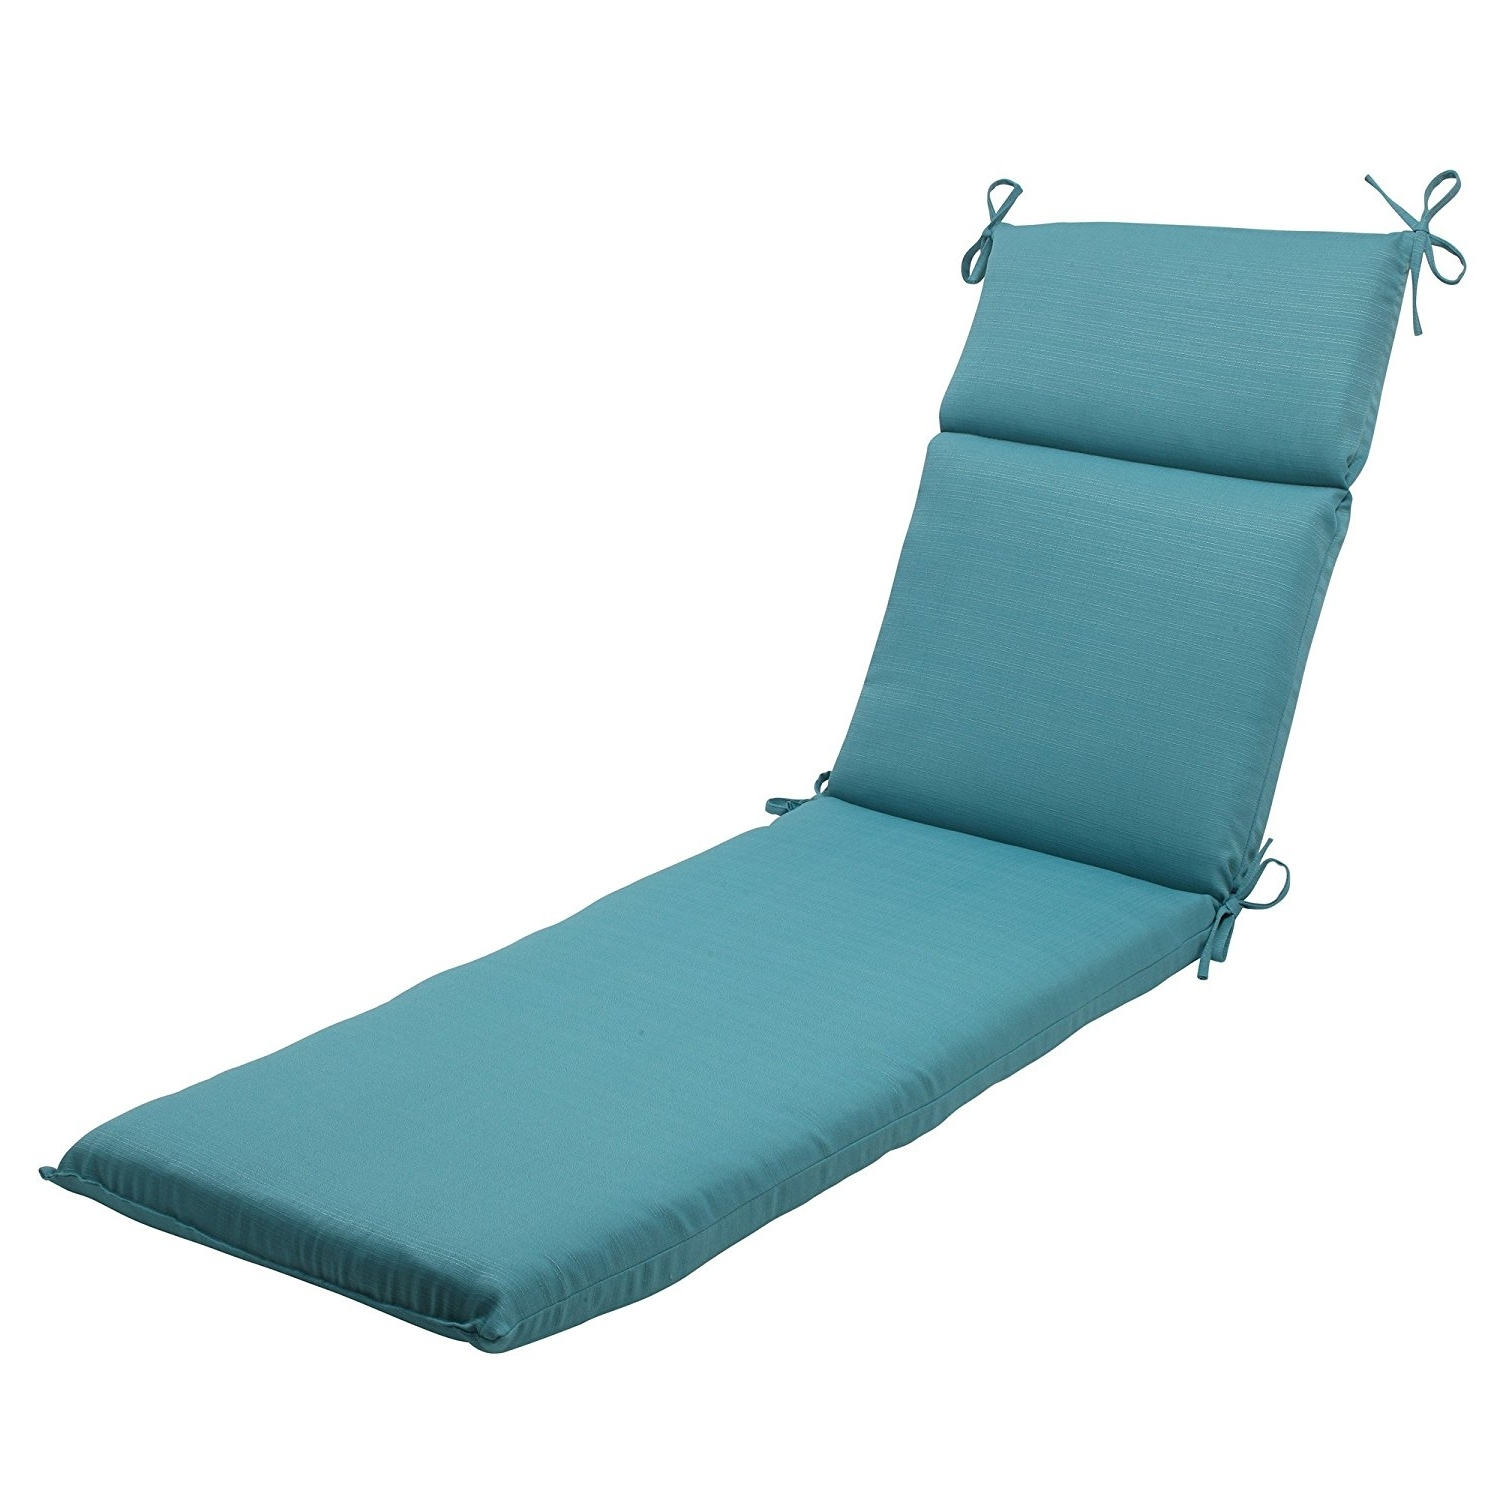 Amazon: Pillow Perfect Indoor/outdoor Forsyth Chaise Lounge Inside Recent Chaise Lounge Outdoor Cushions (View 6 of 15)